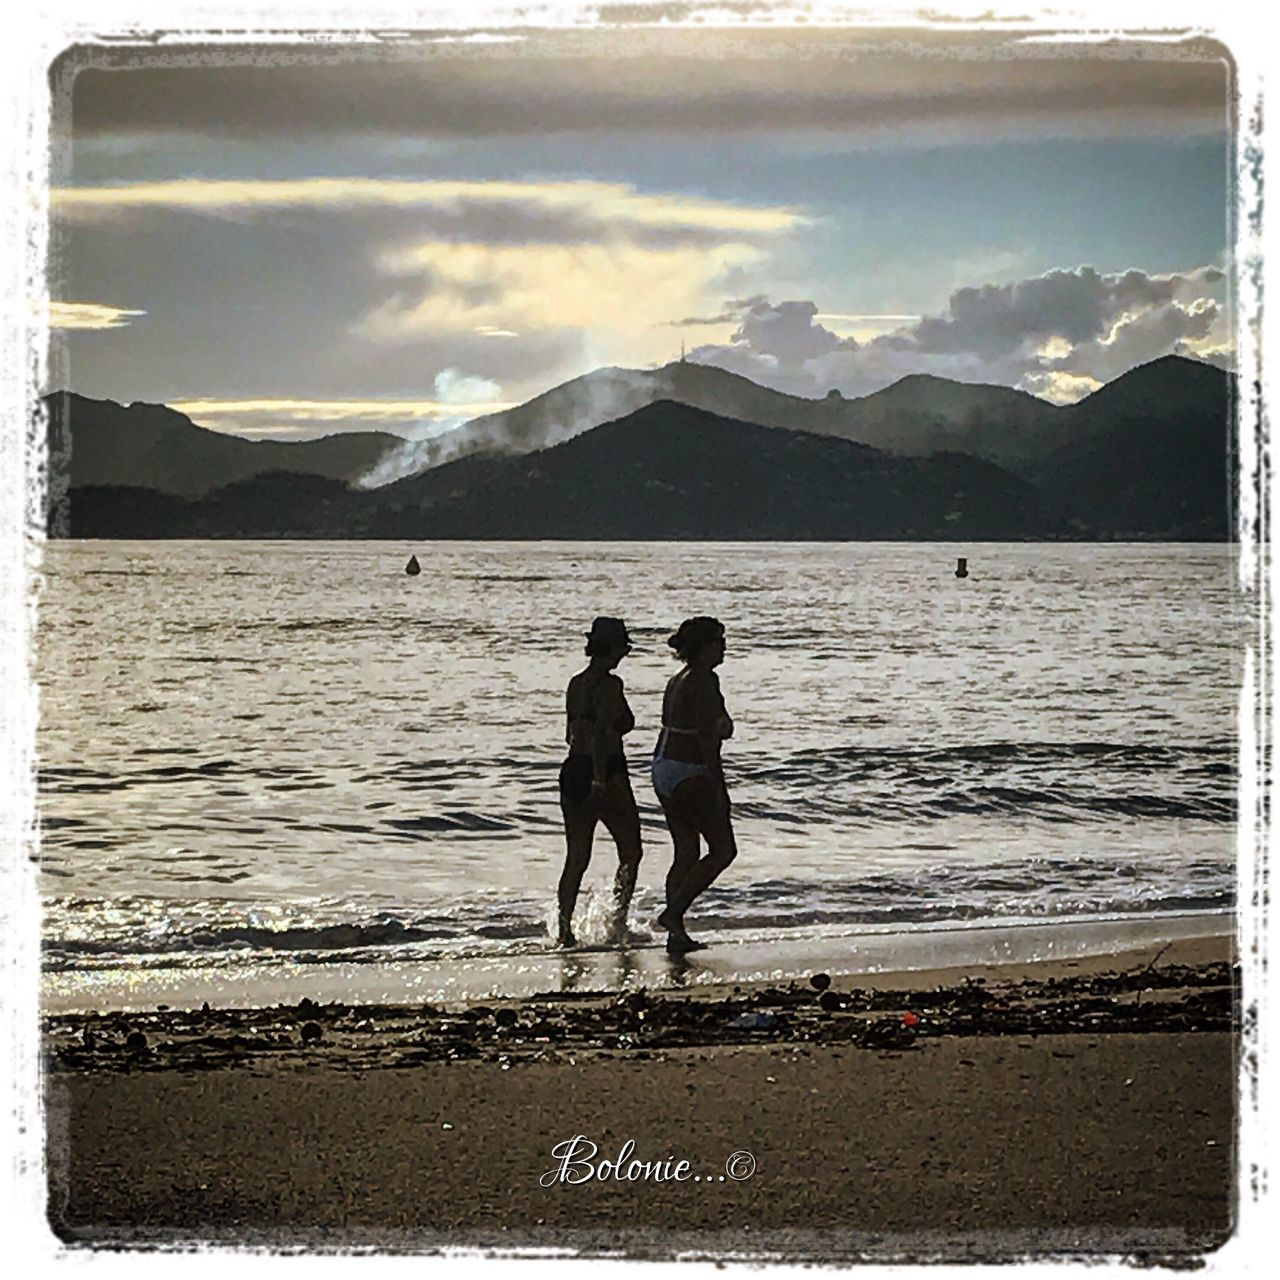 mountain, two people, water, togetherness, real people, full length, nature, scenics, beach, sky, silhouette, bonding, beauty in nature, sea, men, lifestyles, cloud - sky, mountain range, vacations, leisure activity, sand, outdoors, day, people